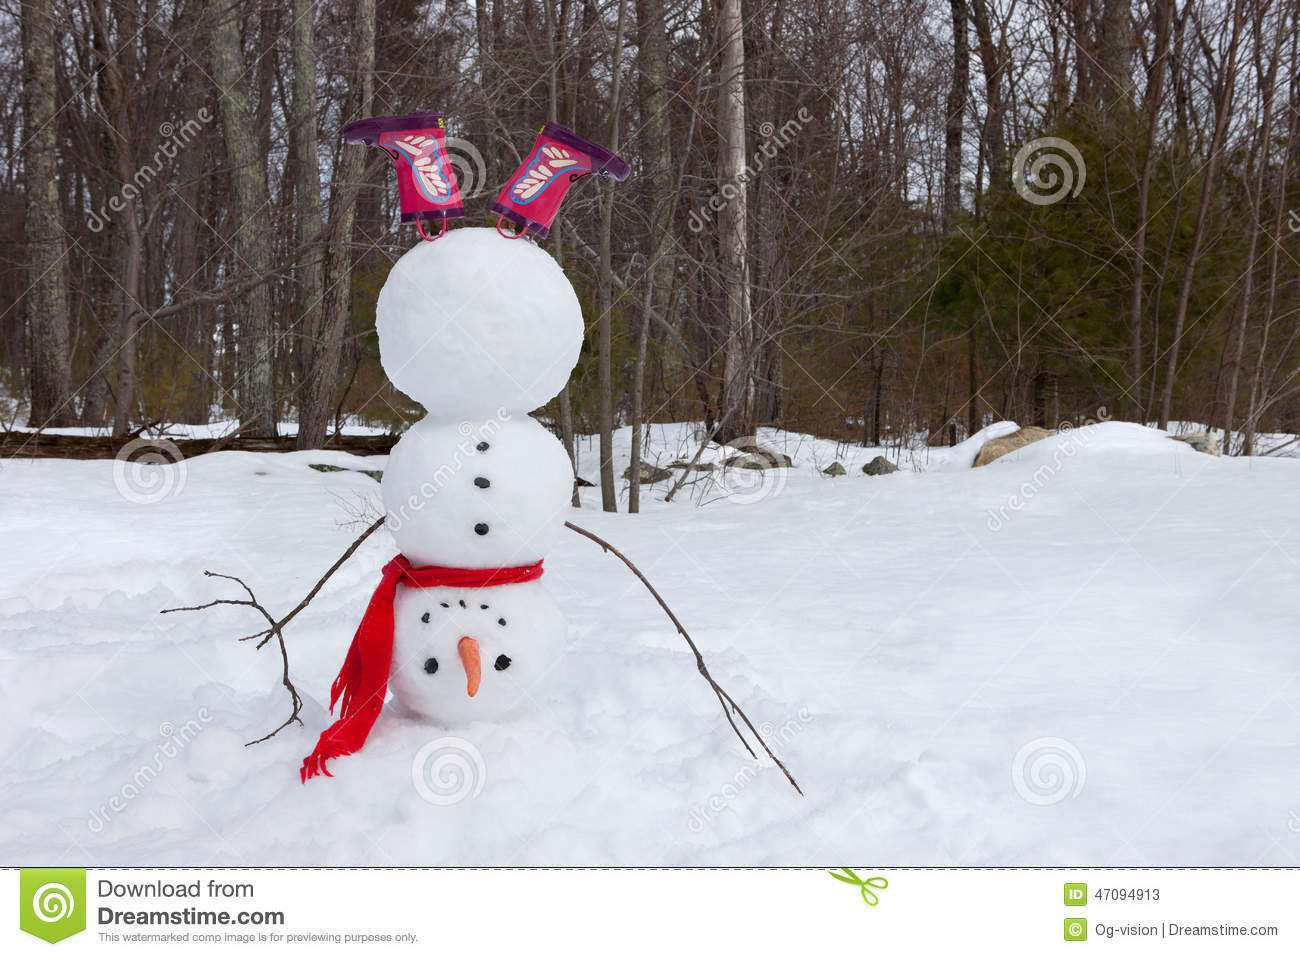 Upside down snowman stock image. Image of nobody, silly ...